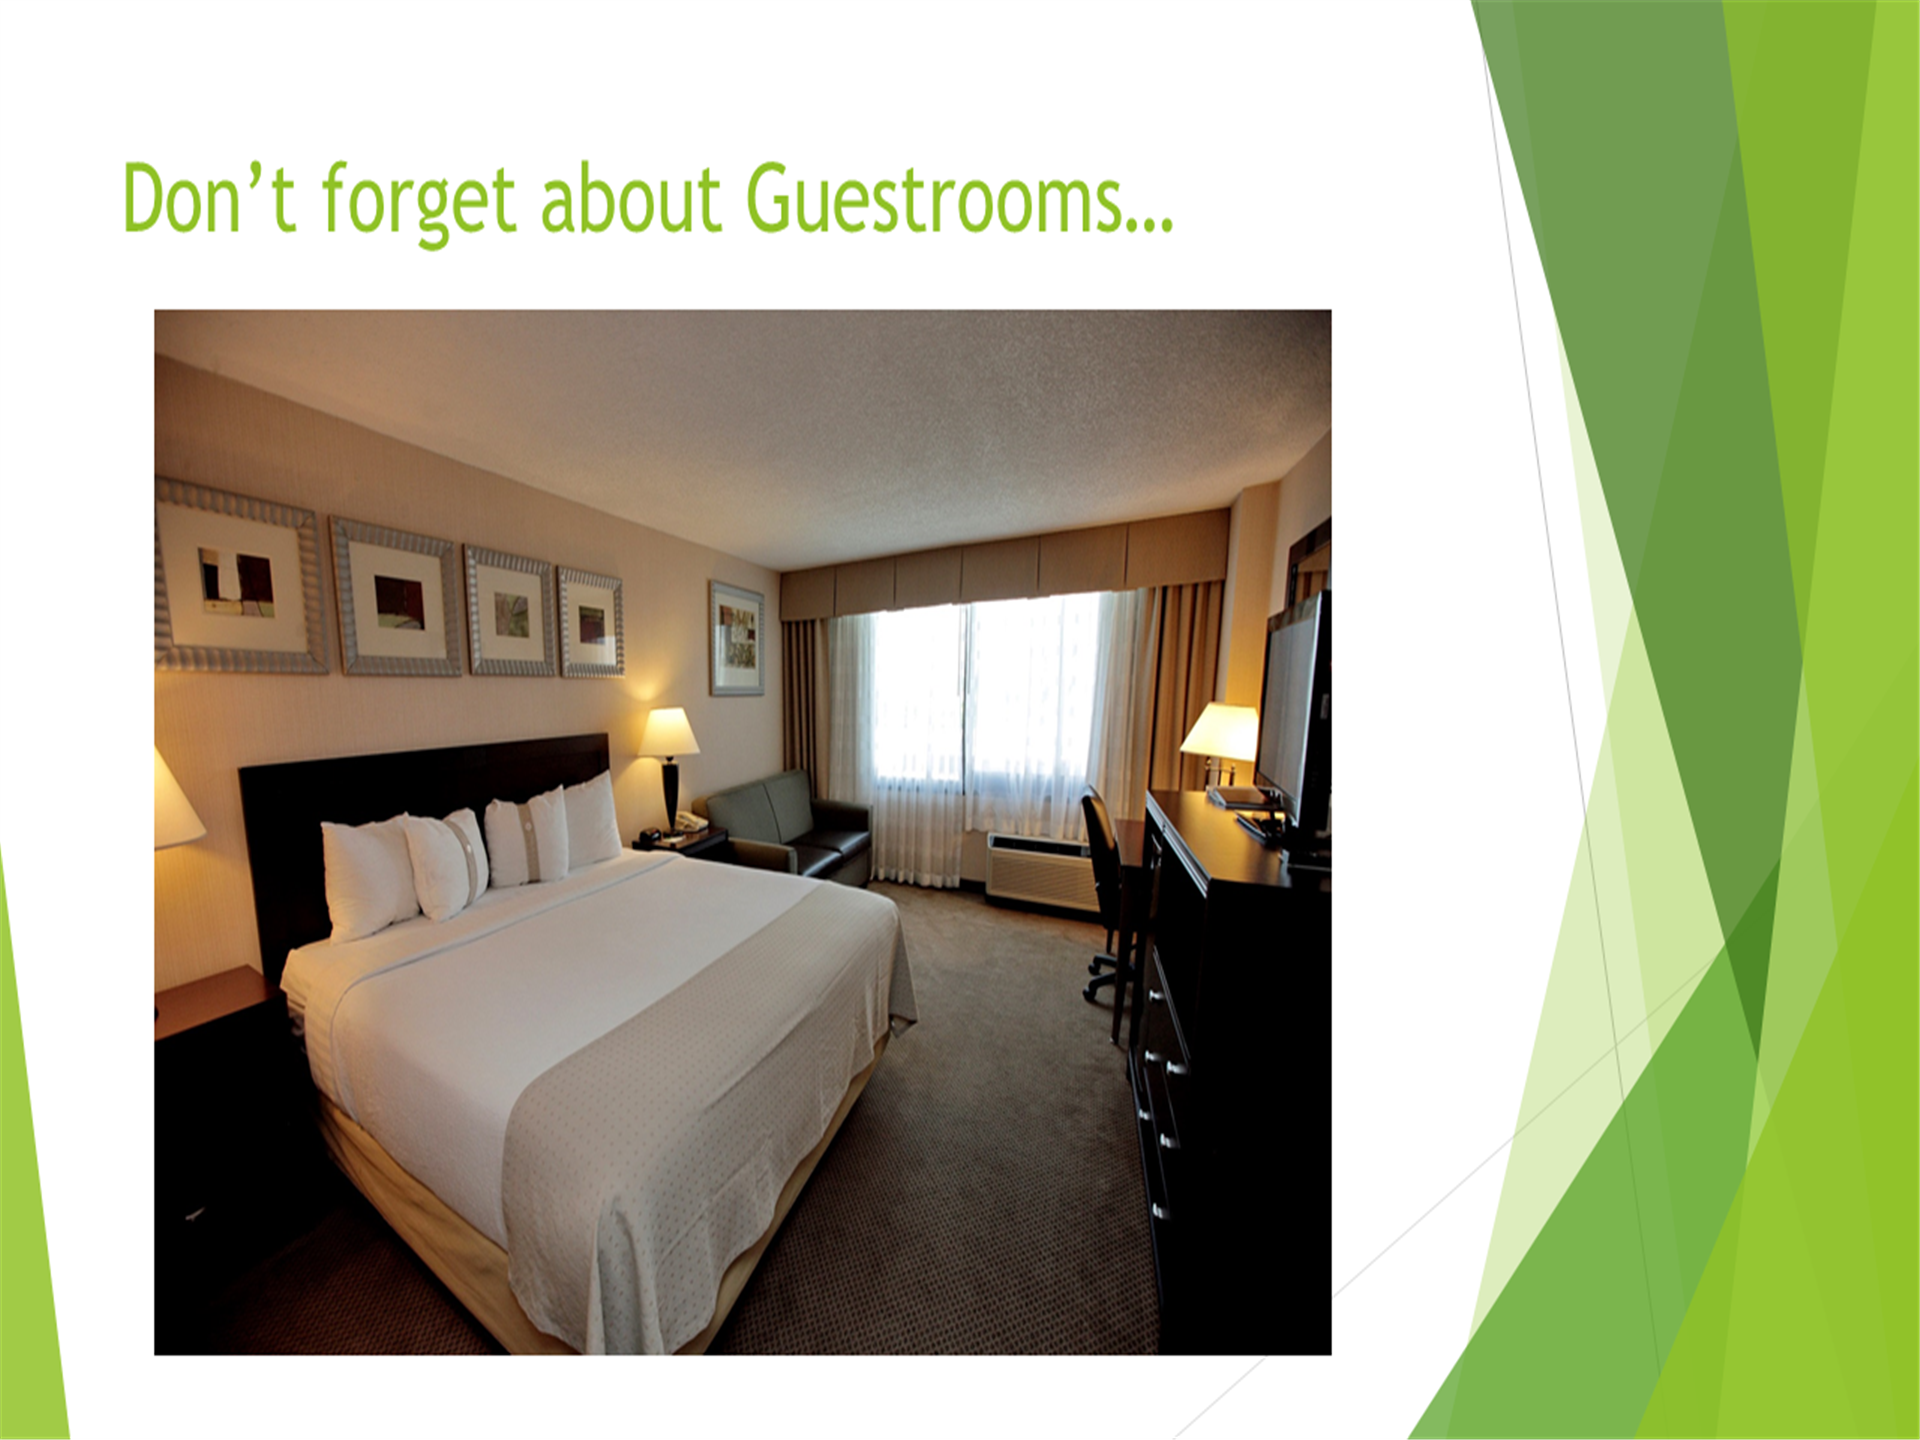 Don't forget about guestrooms... image of hotel room with king size bed